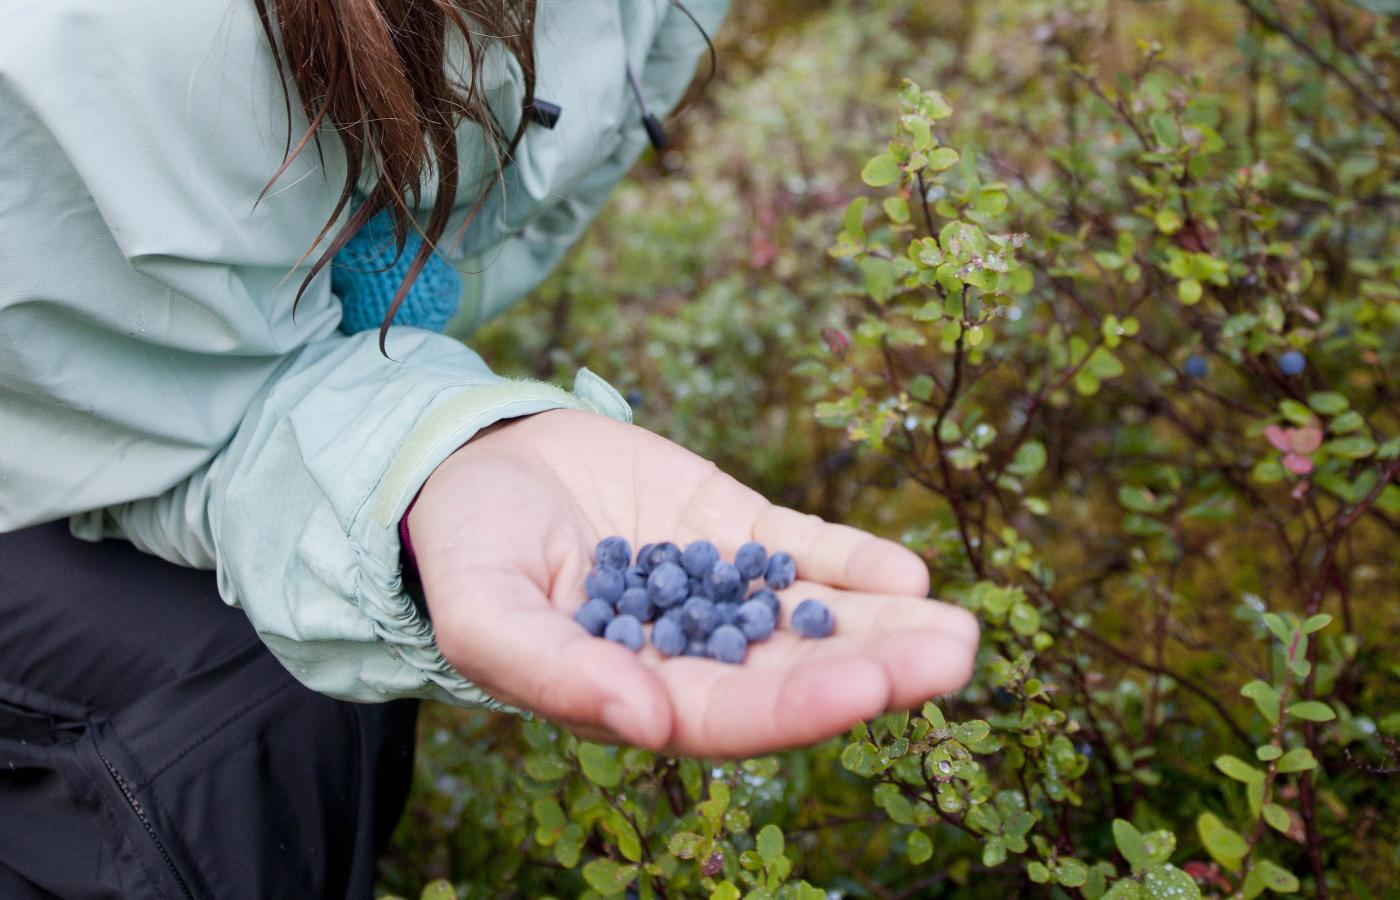 Autumn is prime berry-picking time in the Northwest Territories